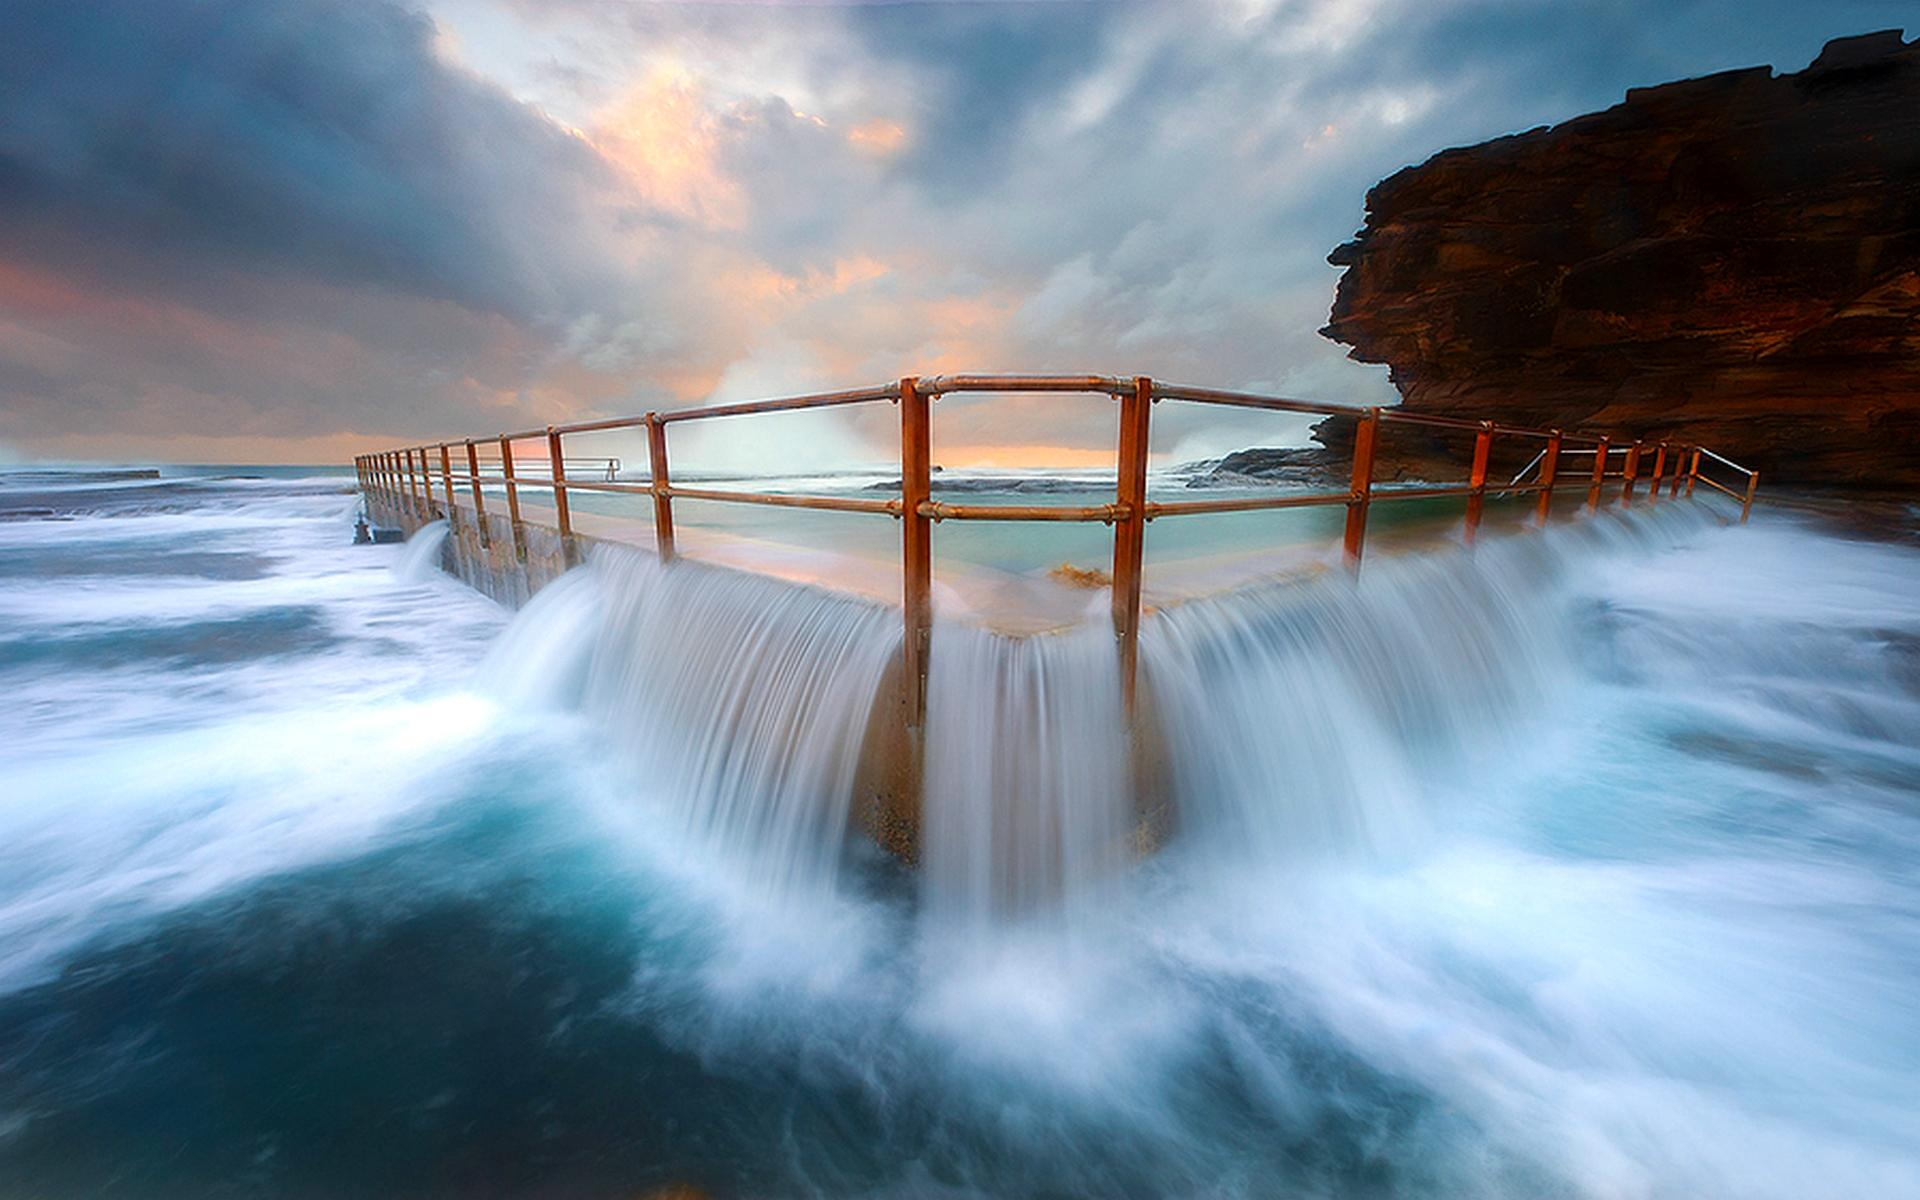 Rock overflow beach pool home decoration canvas poster china mainland